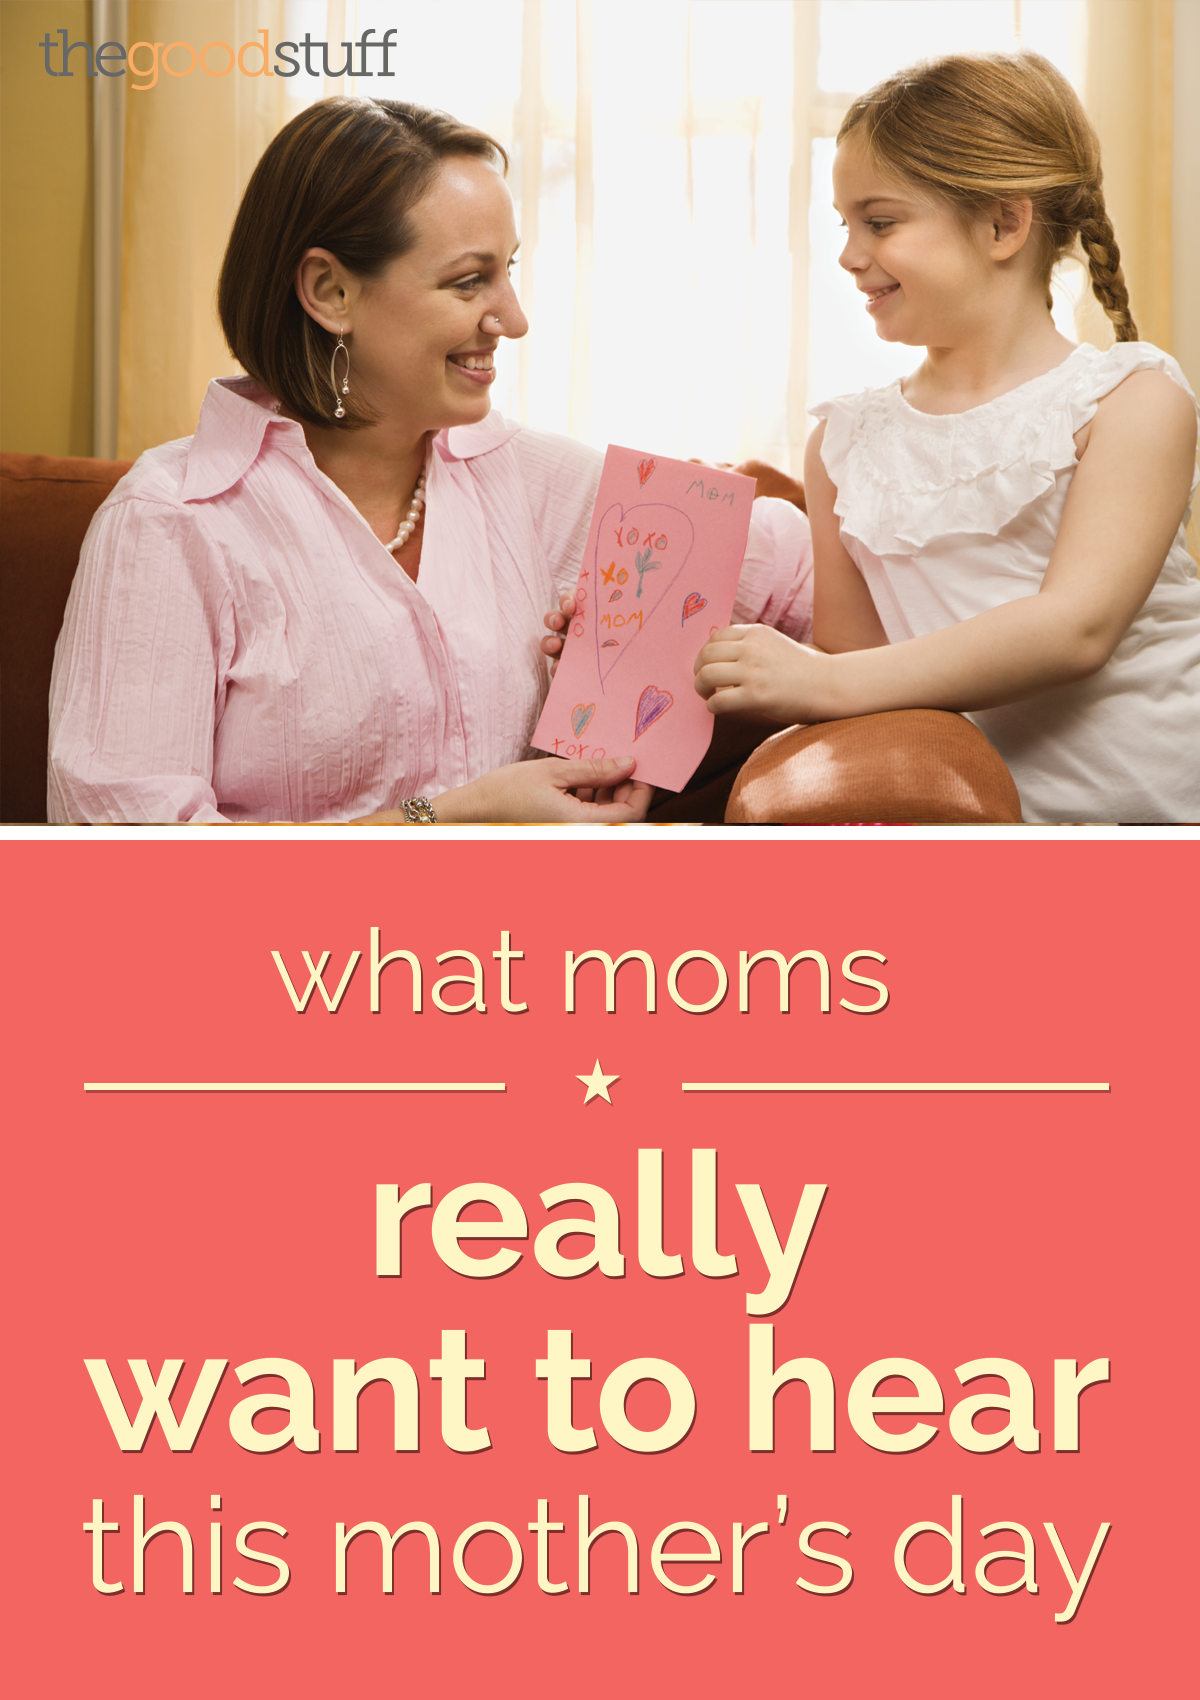 What Moms Want to Hear this Mother's Day | thegoodstuff